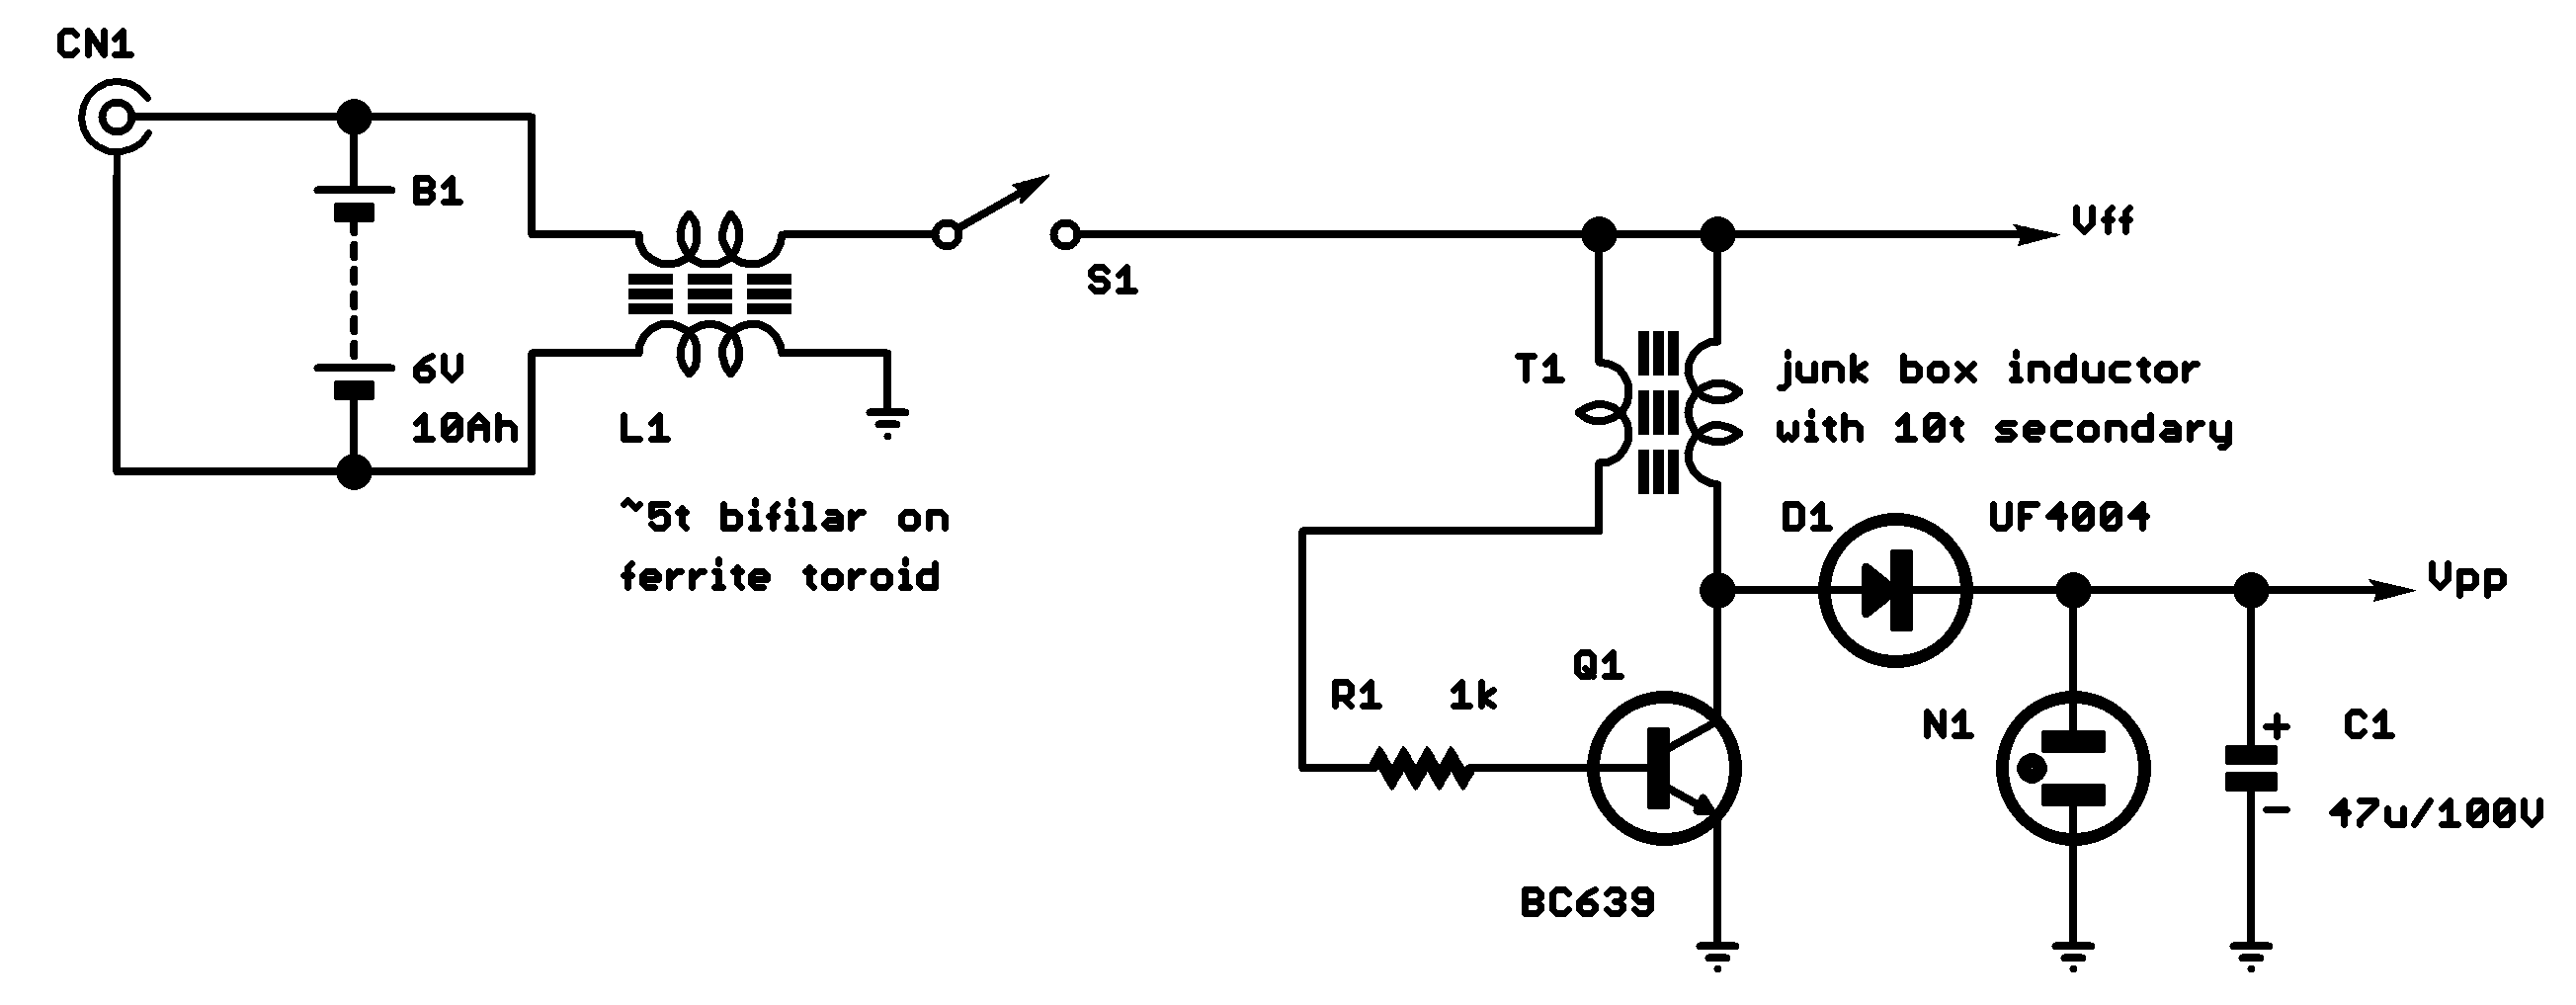 The Coil L1 On The Fm Radio Is Formed On The Pcb It39s Not Actually A